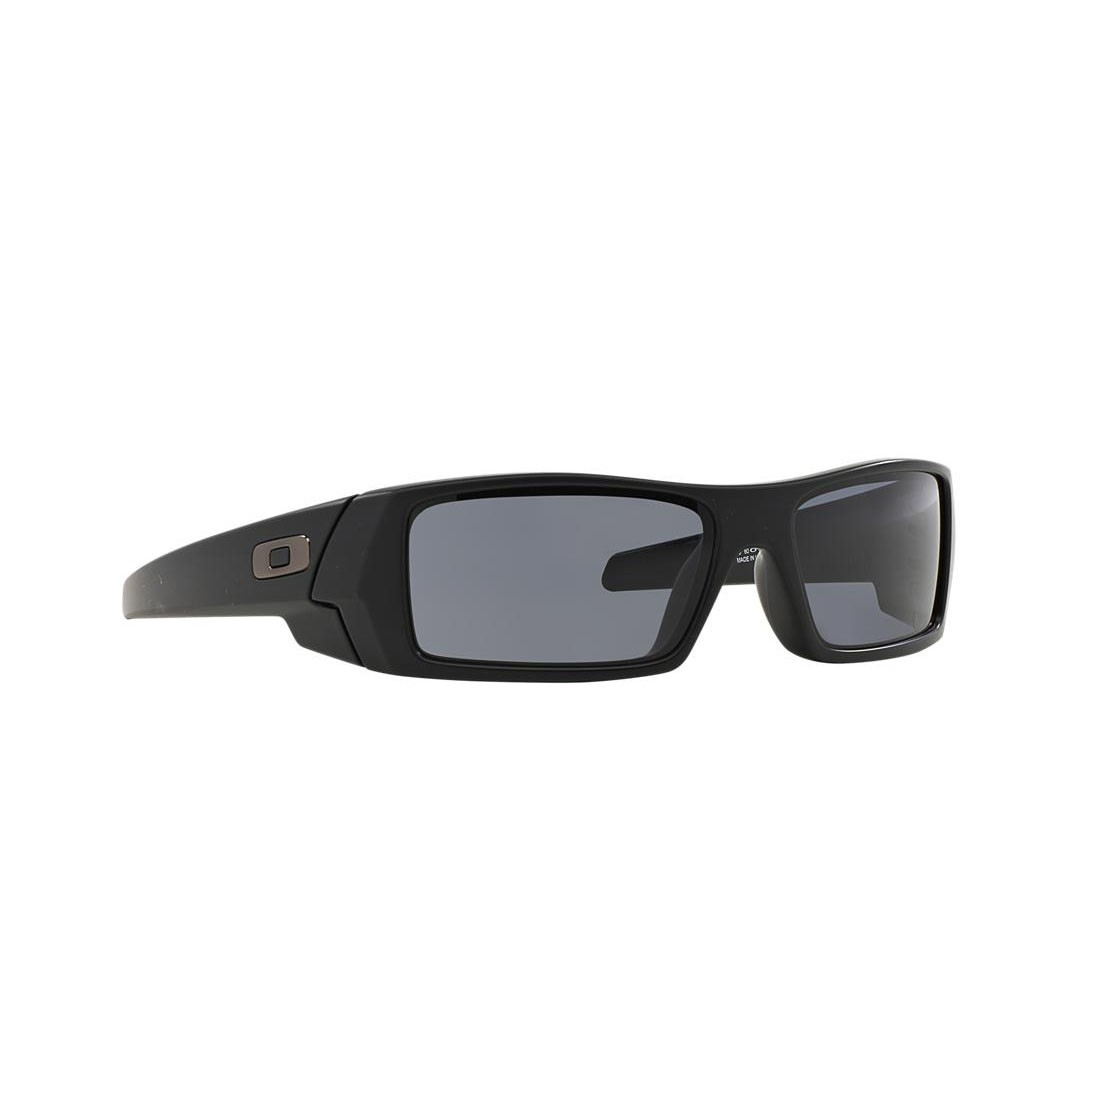 Oakley Gascan Men's Sunglasses OO9014-03-473 60mm